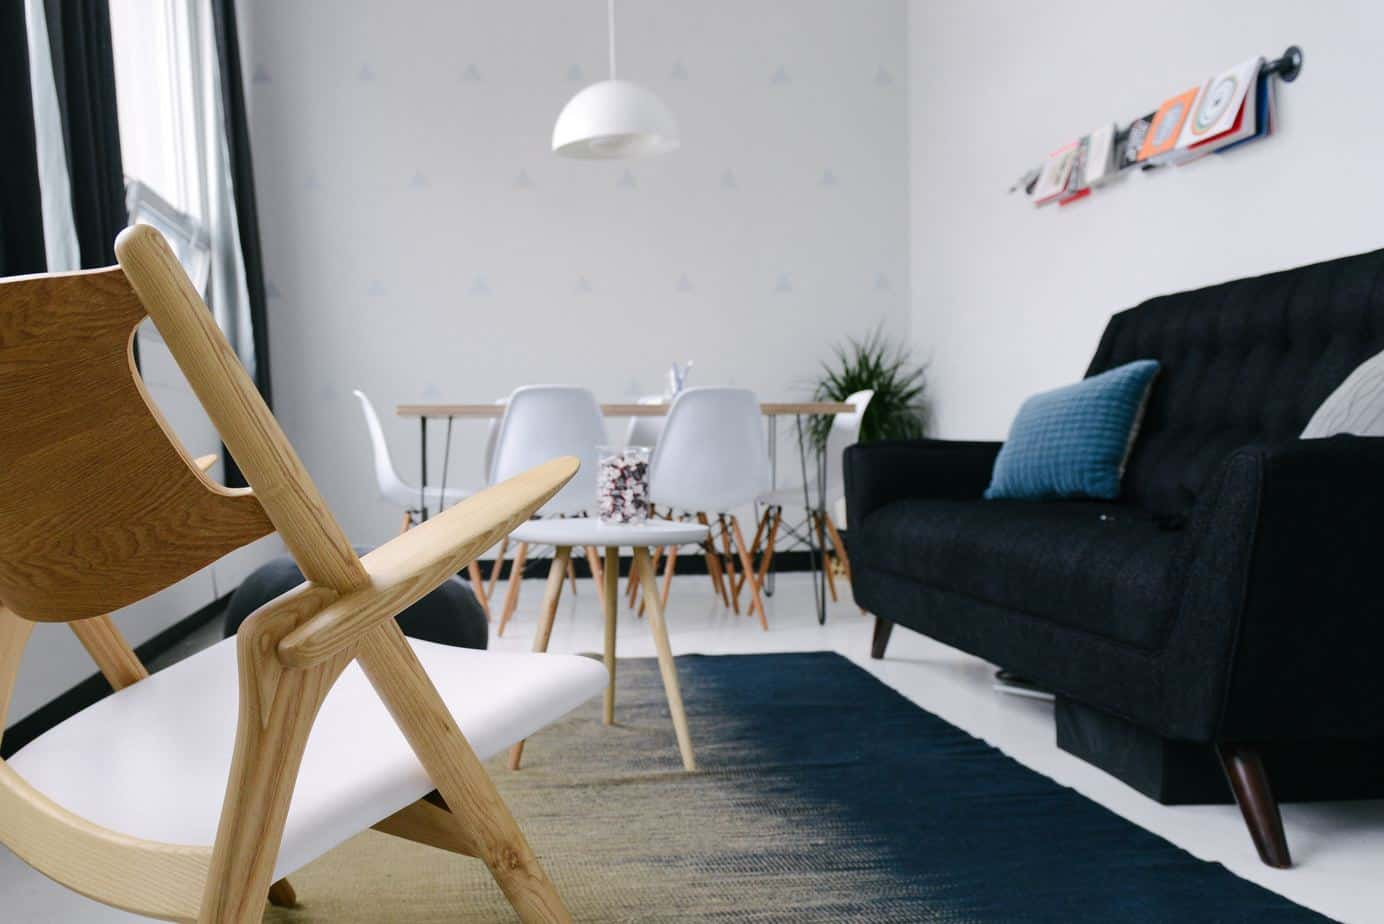 5 Ways to Make Space in A Small Place